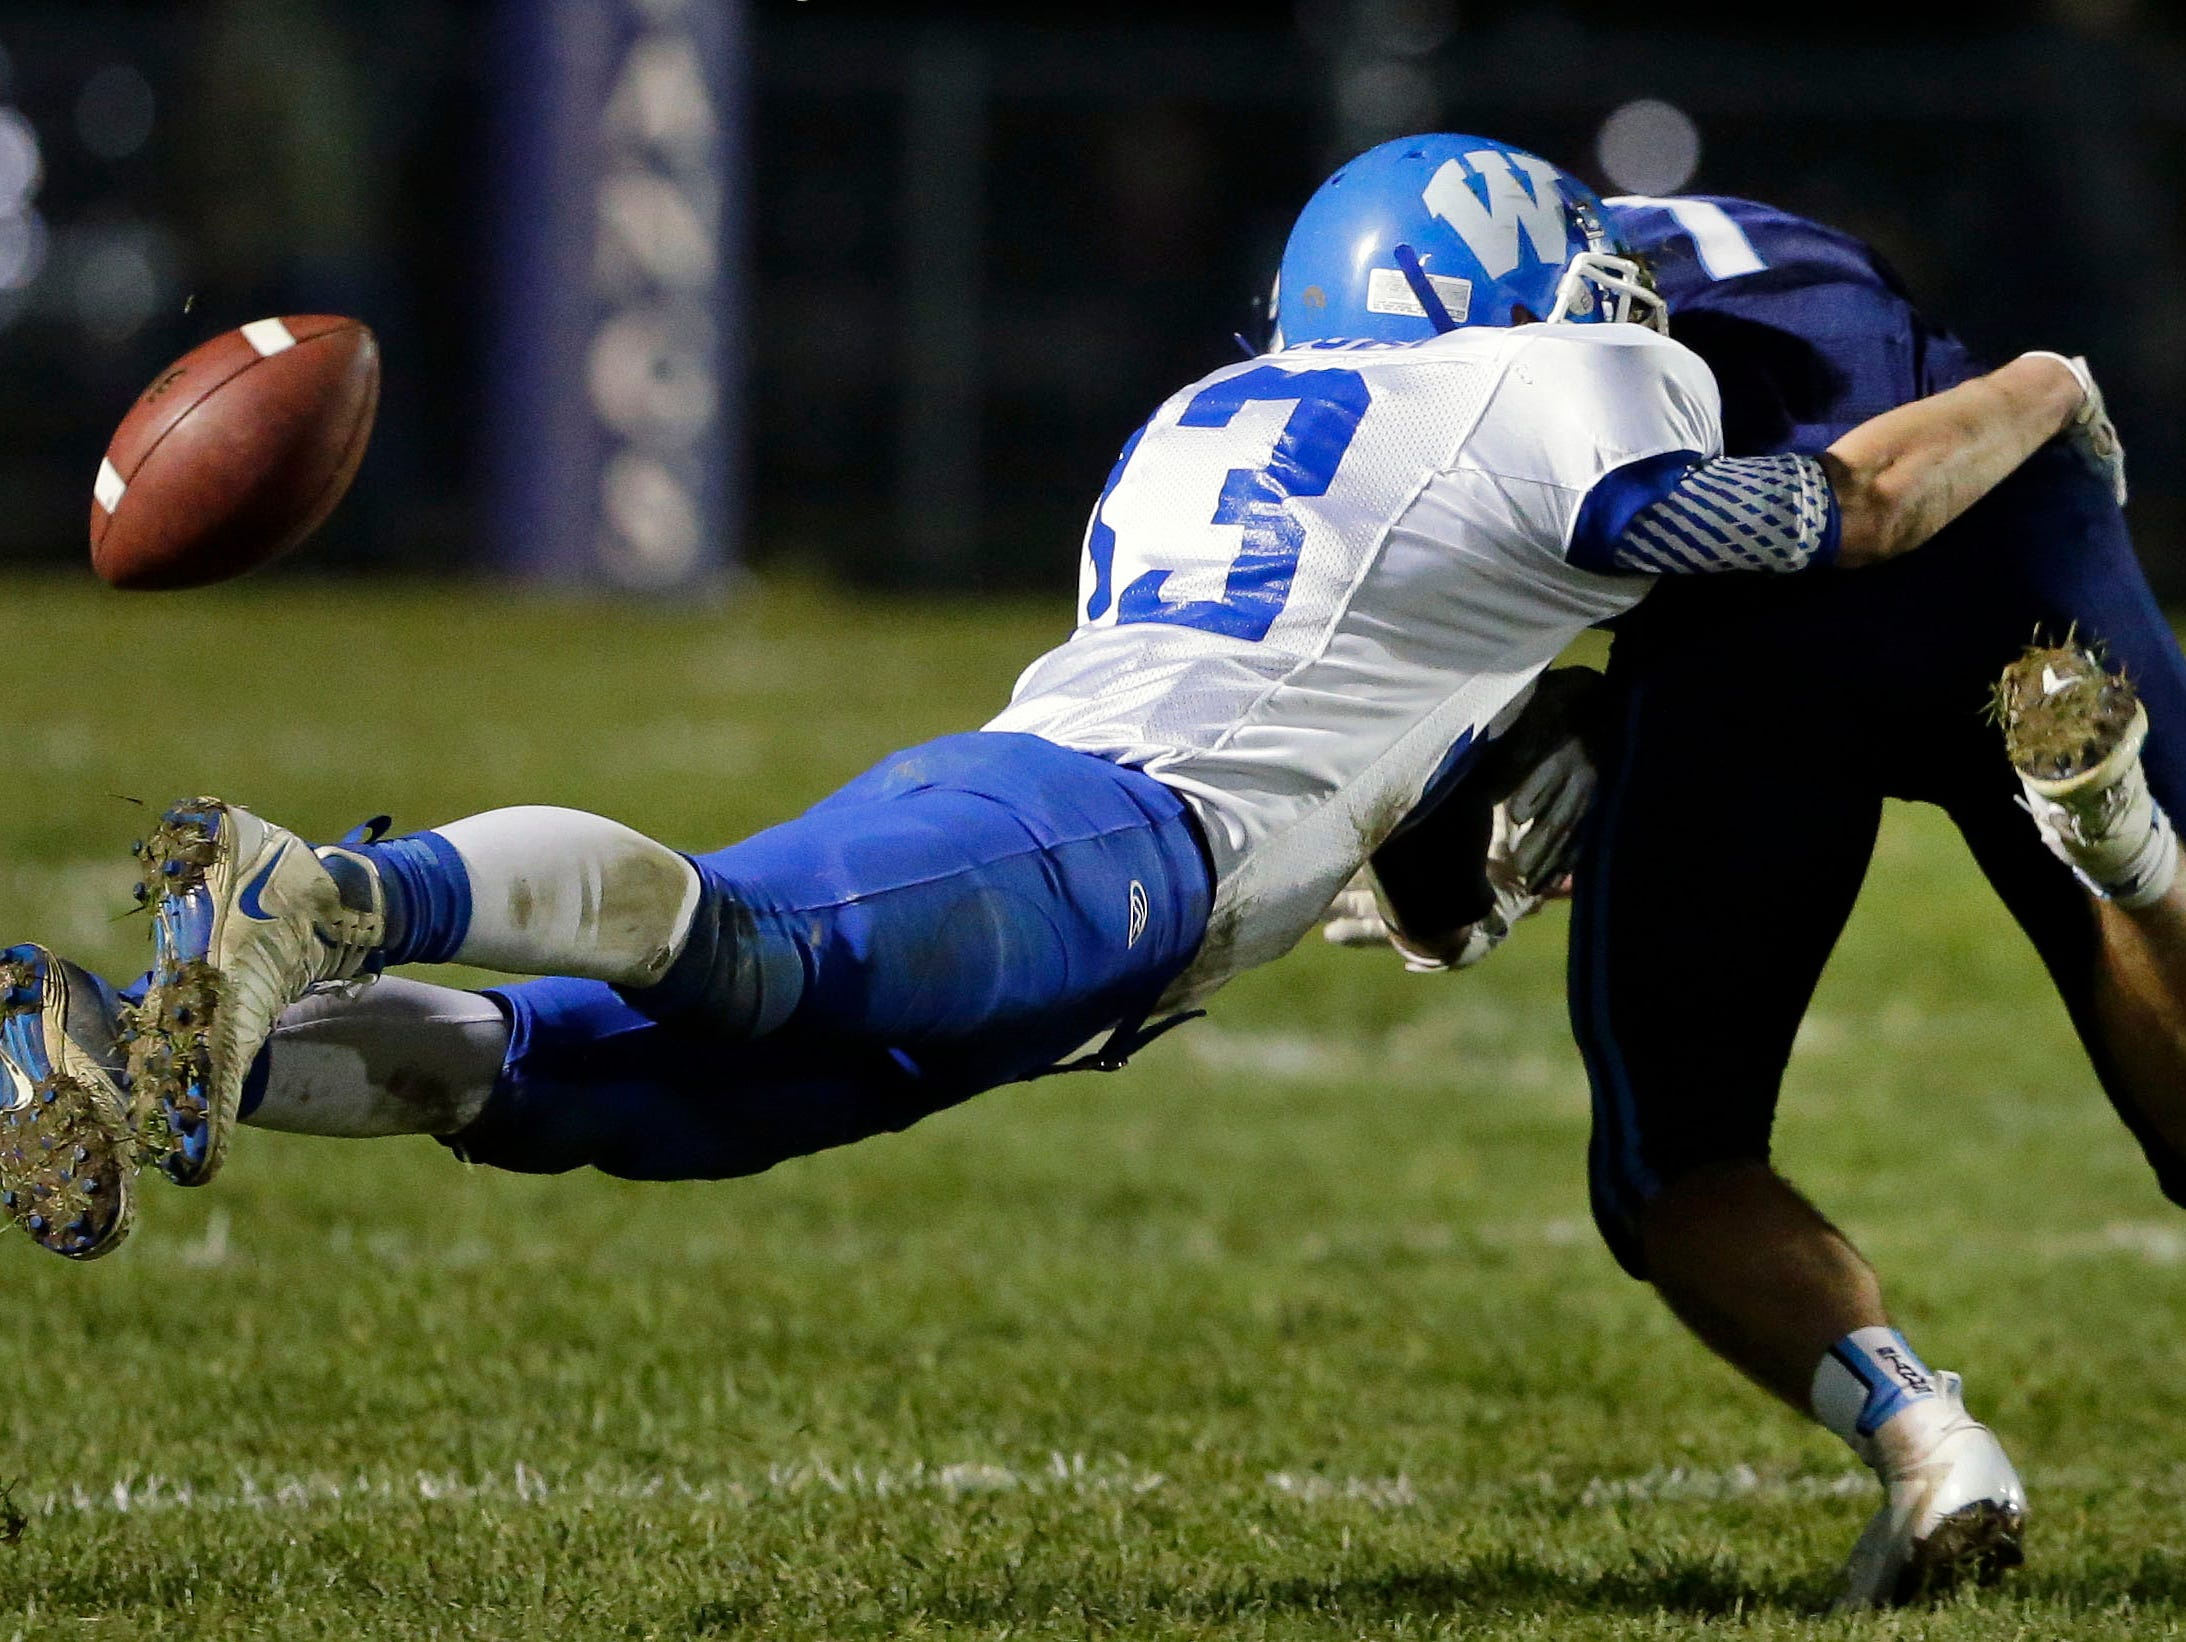 A pass to Adam Hietpas of Little Chute is incomplete as he is tackled by Will Braeger of Wrightstown in a WIAA Division 4 Level 3 playoff game Friday, November 2, 2018, at Fitzpatrick Field in Little Chute, Wis.Ron Page/USA TODAY NETWORK-Wisconsin